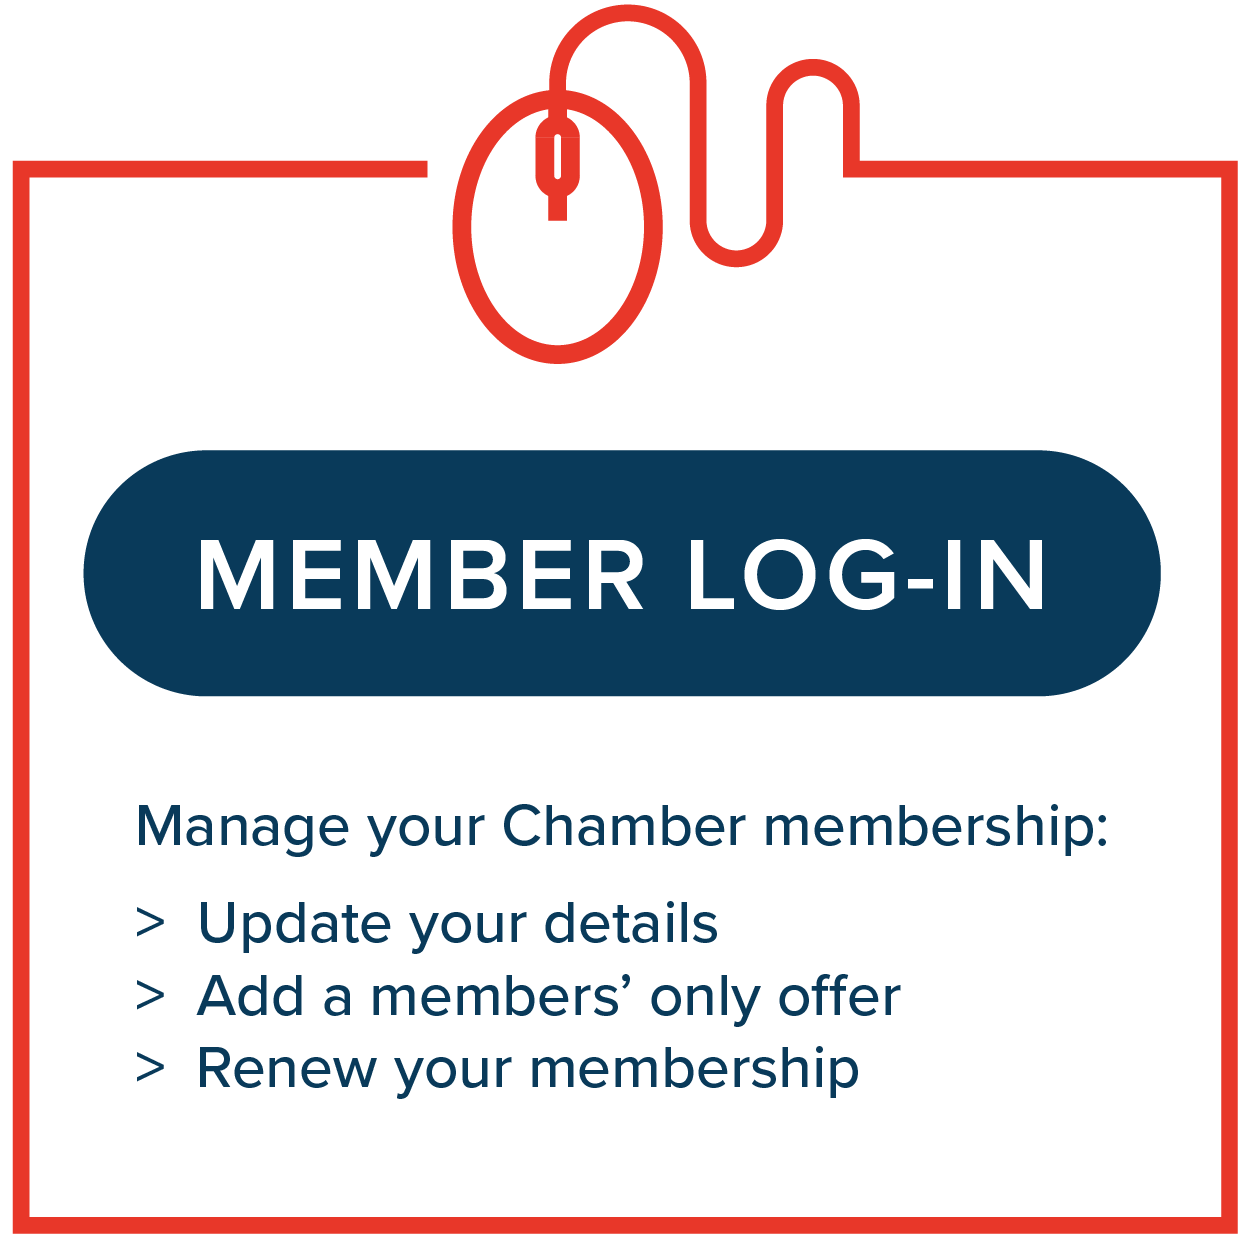 Manage your Chamber membership - update your details, add members' only offer, renew your membership